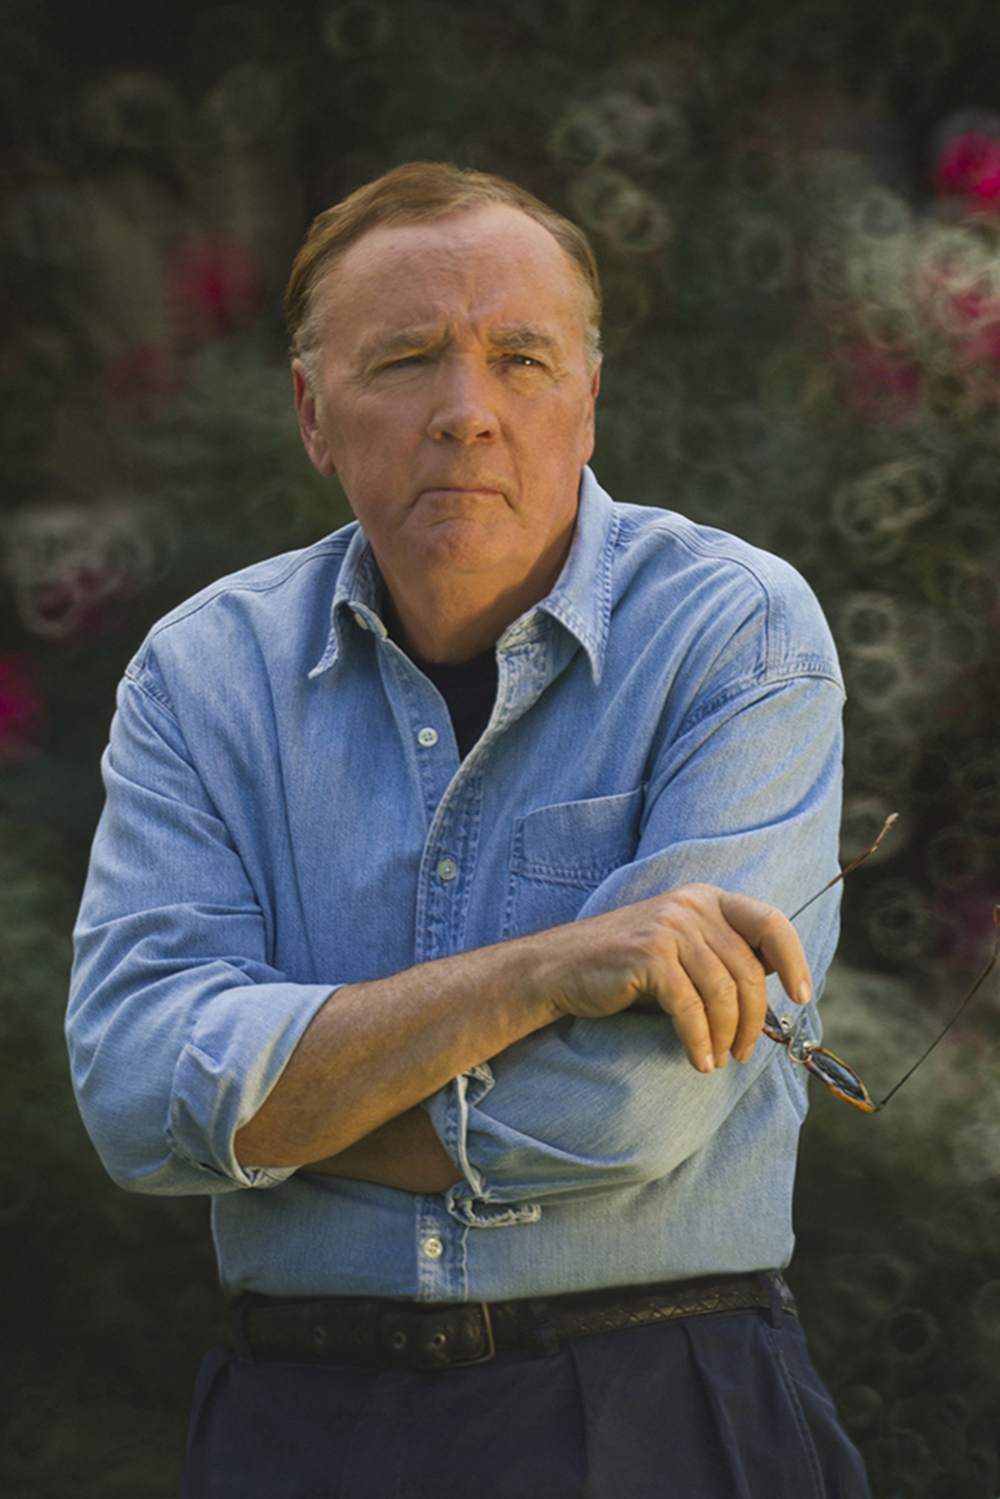 JAMES PATTERSON. Photo credit: David Burnett